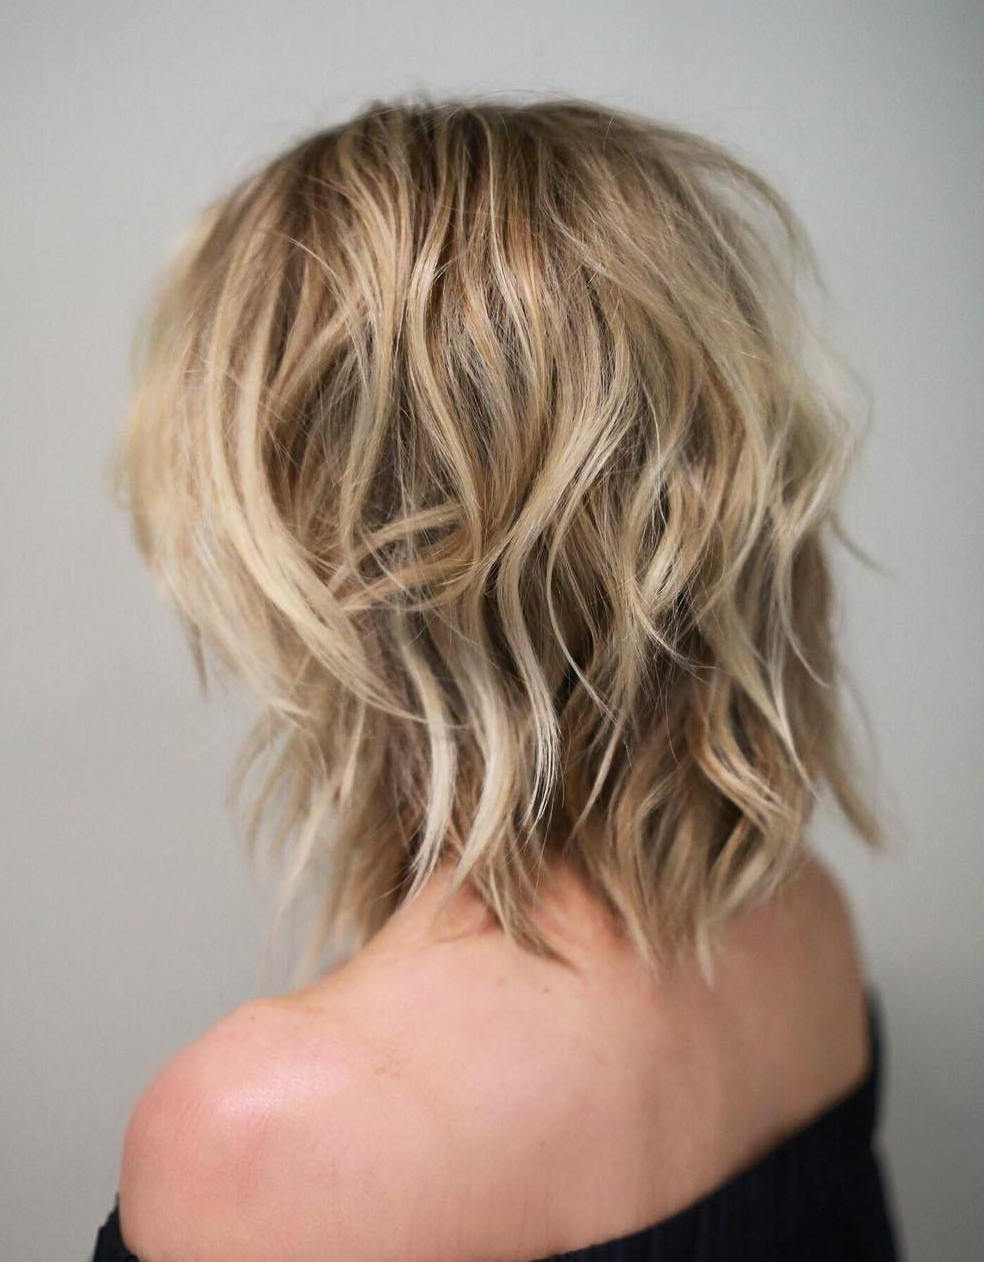 Shag Haircuts And Hairstyles In 2018 — Therighthairstyles With Most Popular Sassy Medium Haircuts For Thick Hair (View 17 of 20)